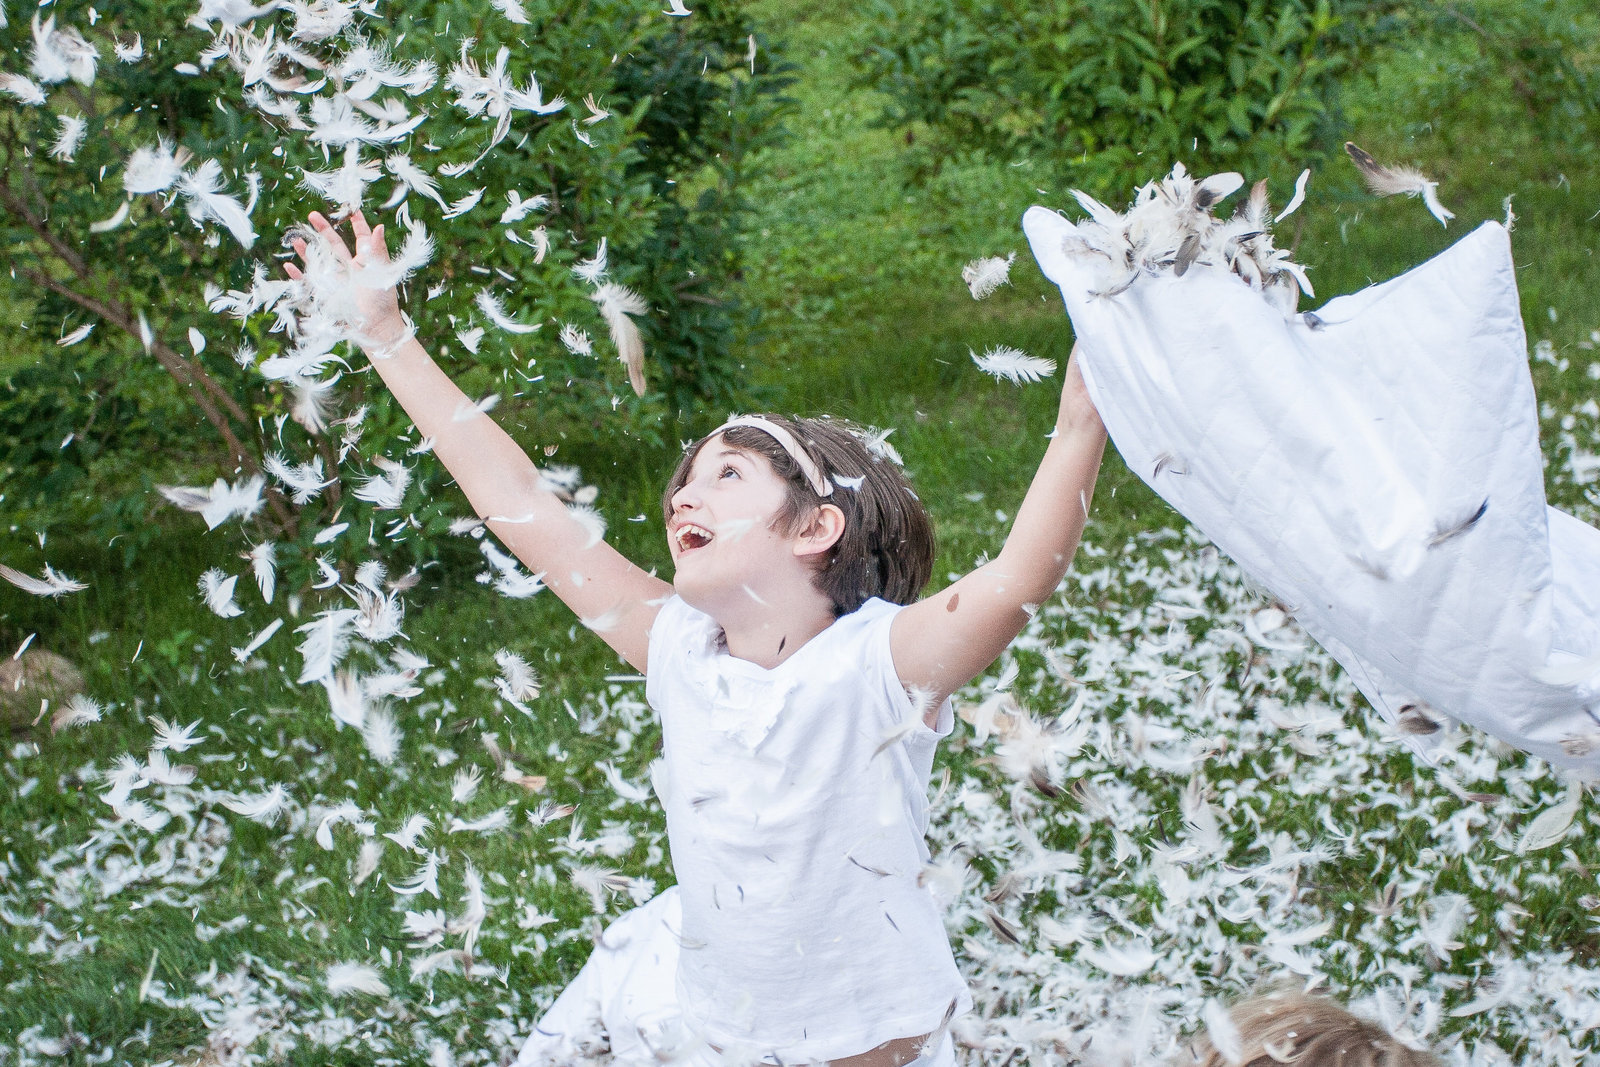 Fun feather pillow fight with best friends tweens kids by Hudson Valley children's photographer in Cornwall NY